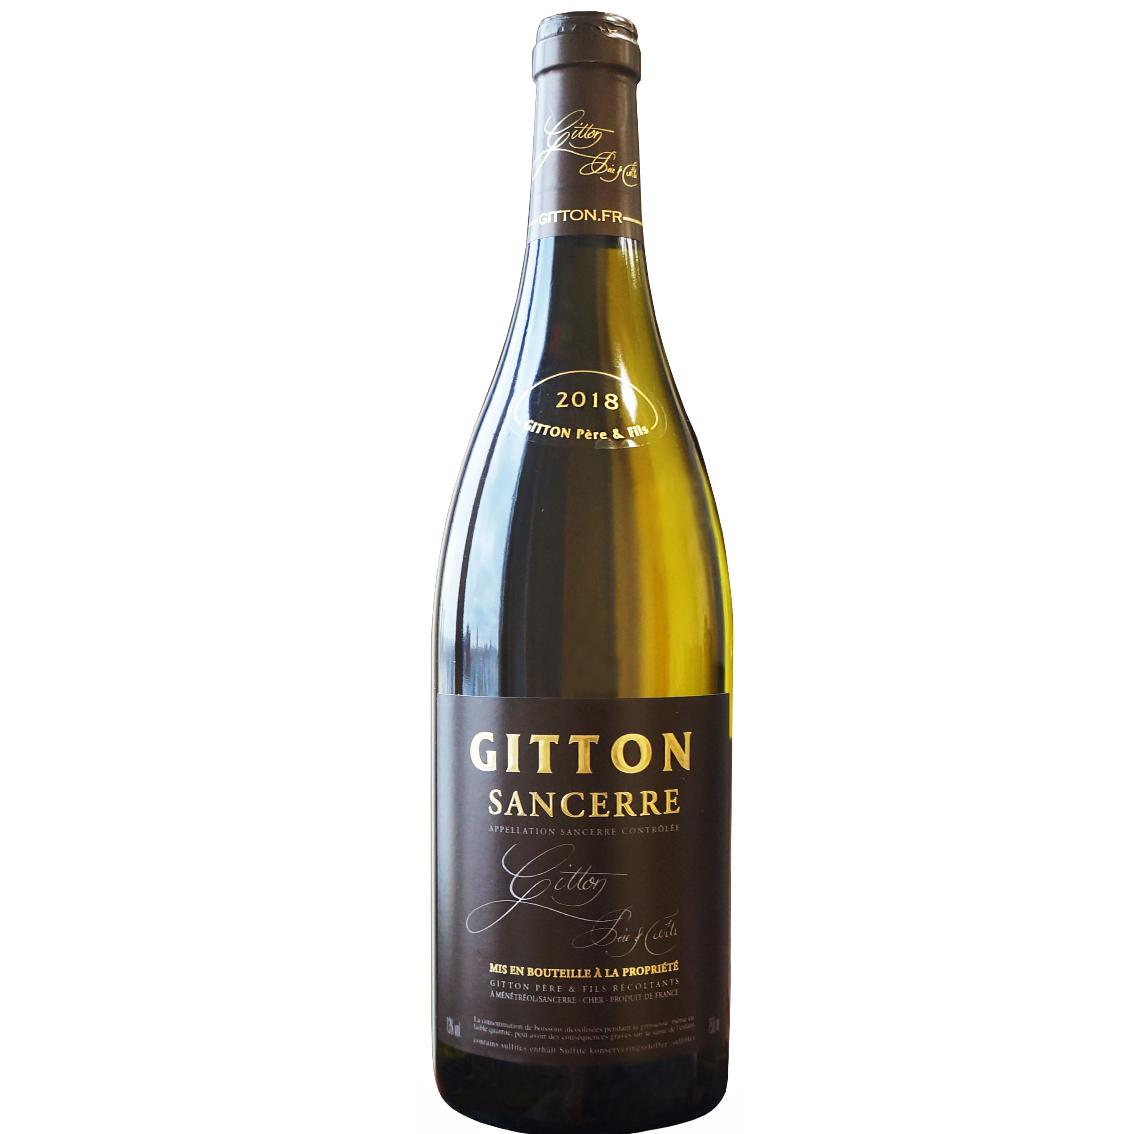 2018 Sancerre - Gitton